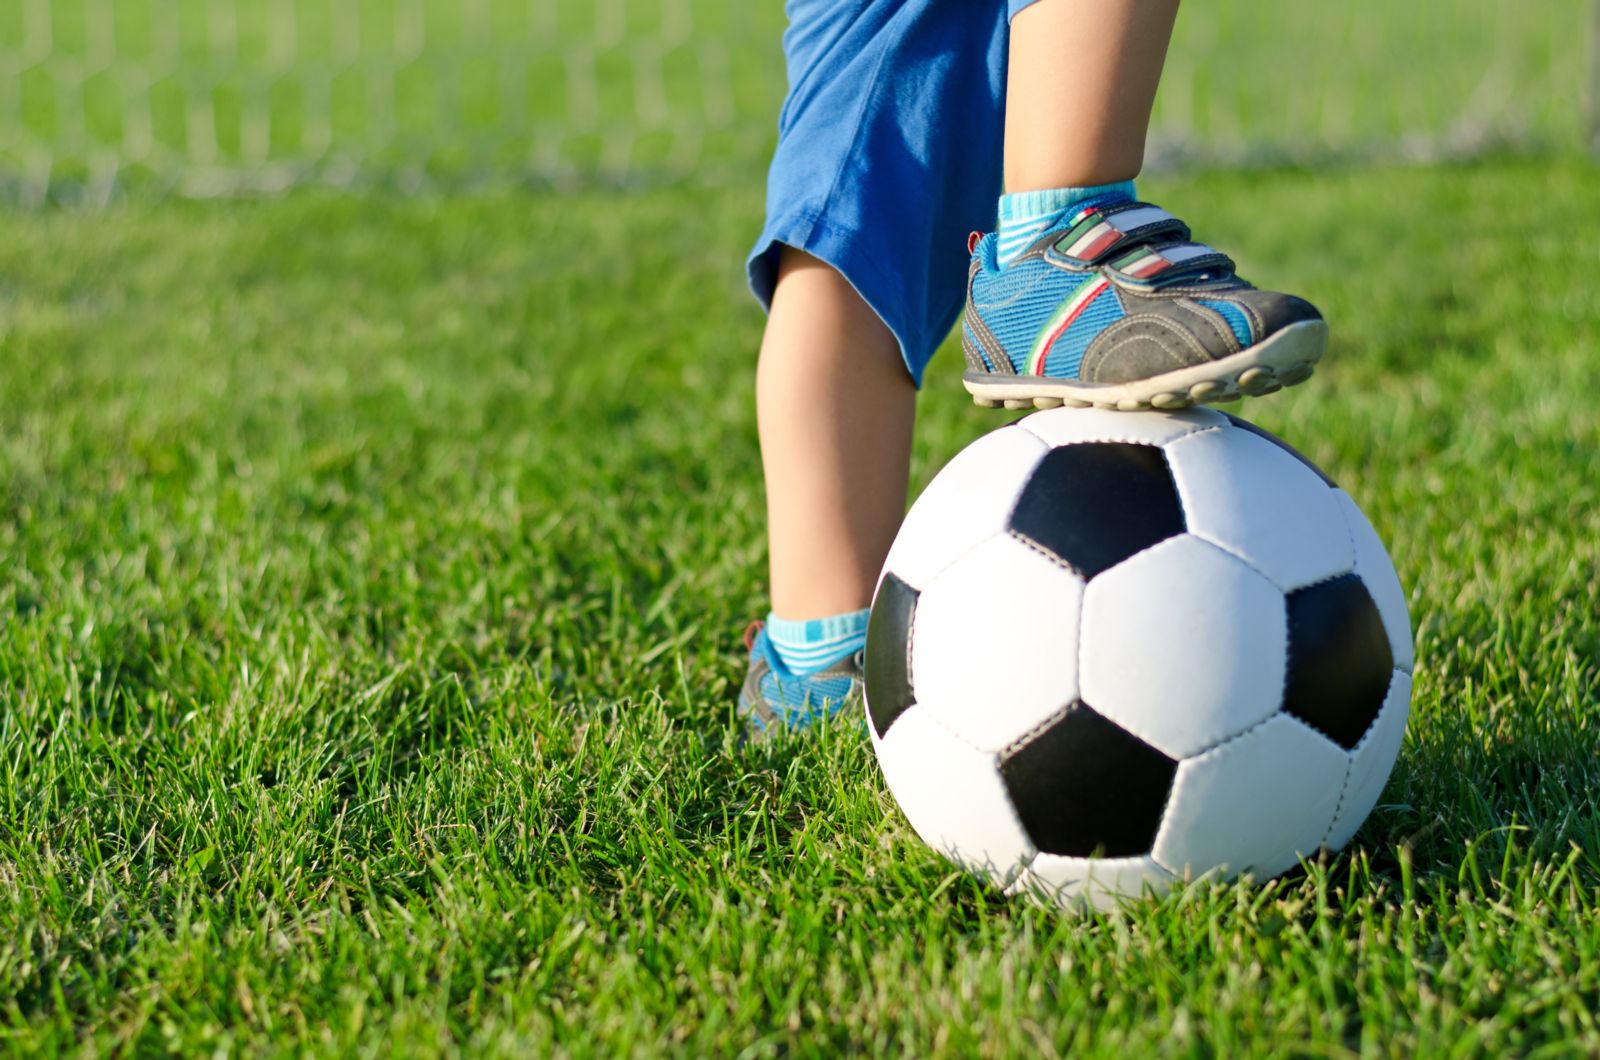 Kids need the right shoes to participate in sports